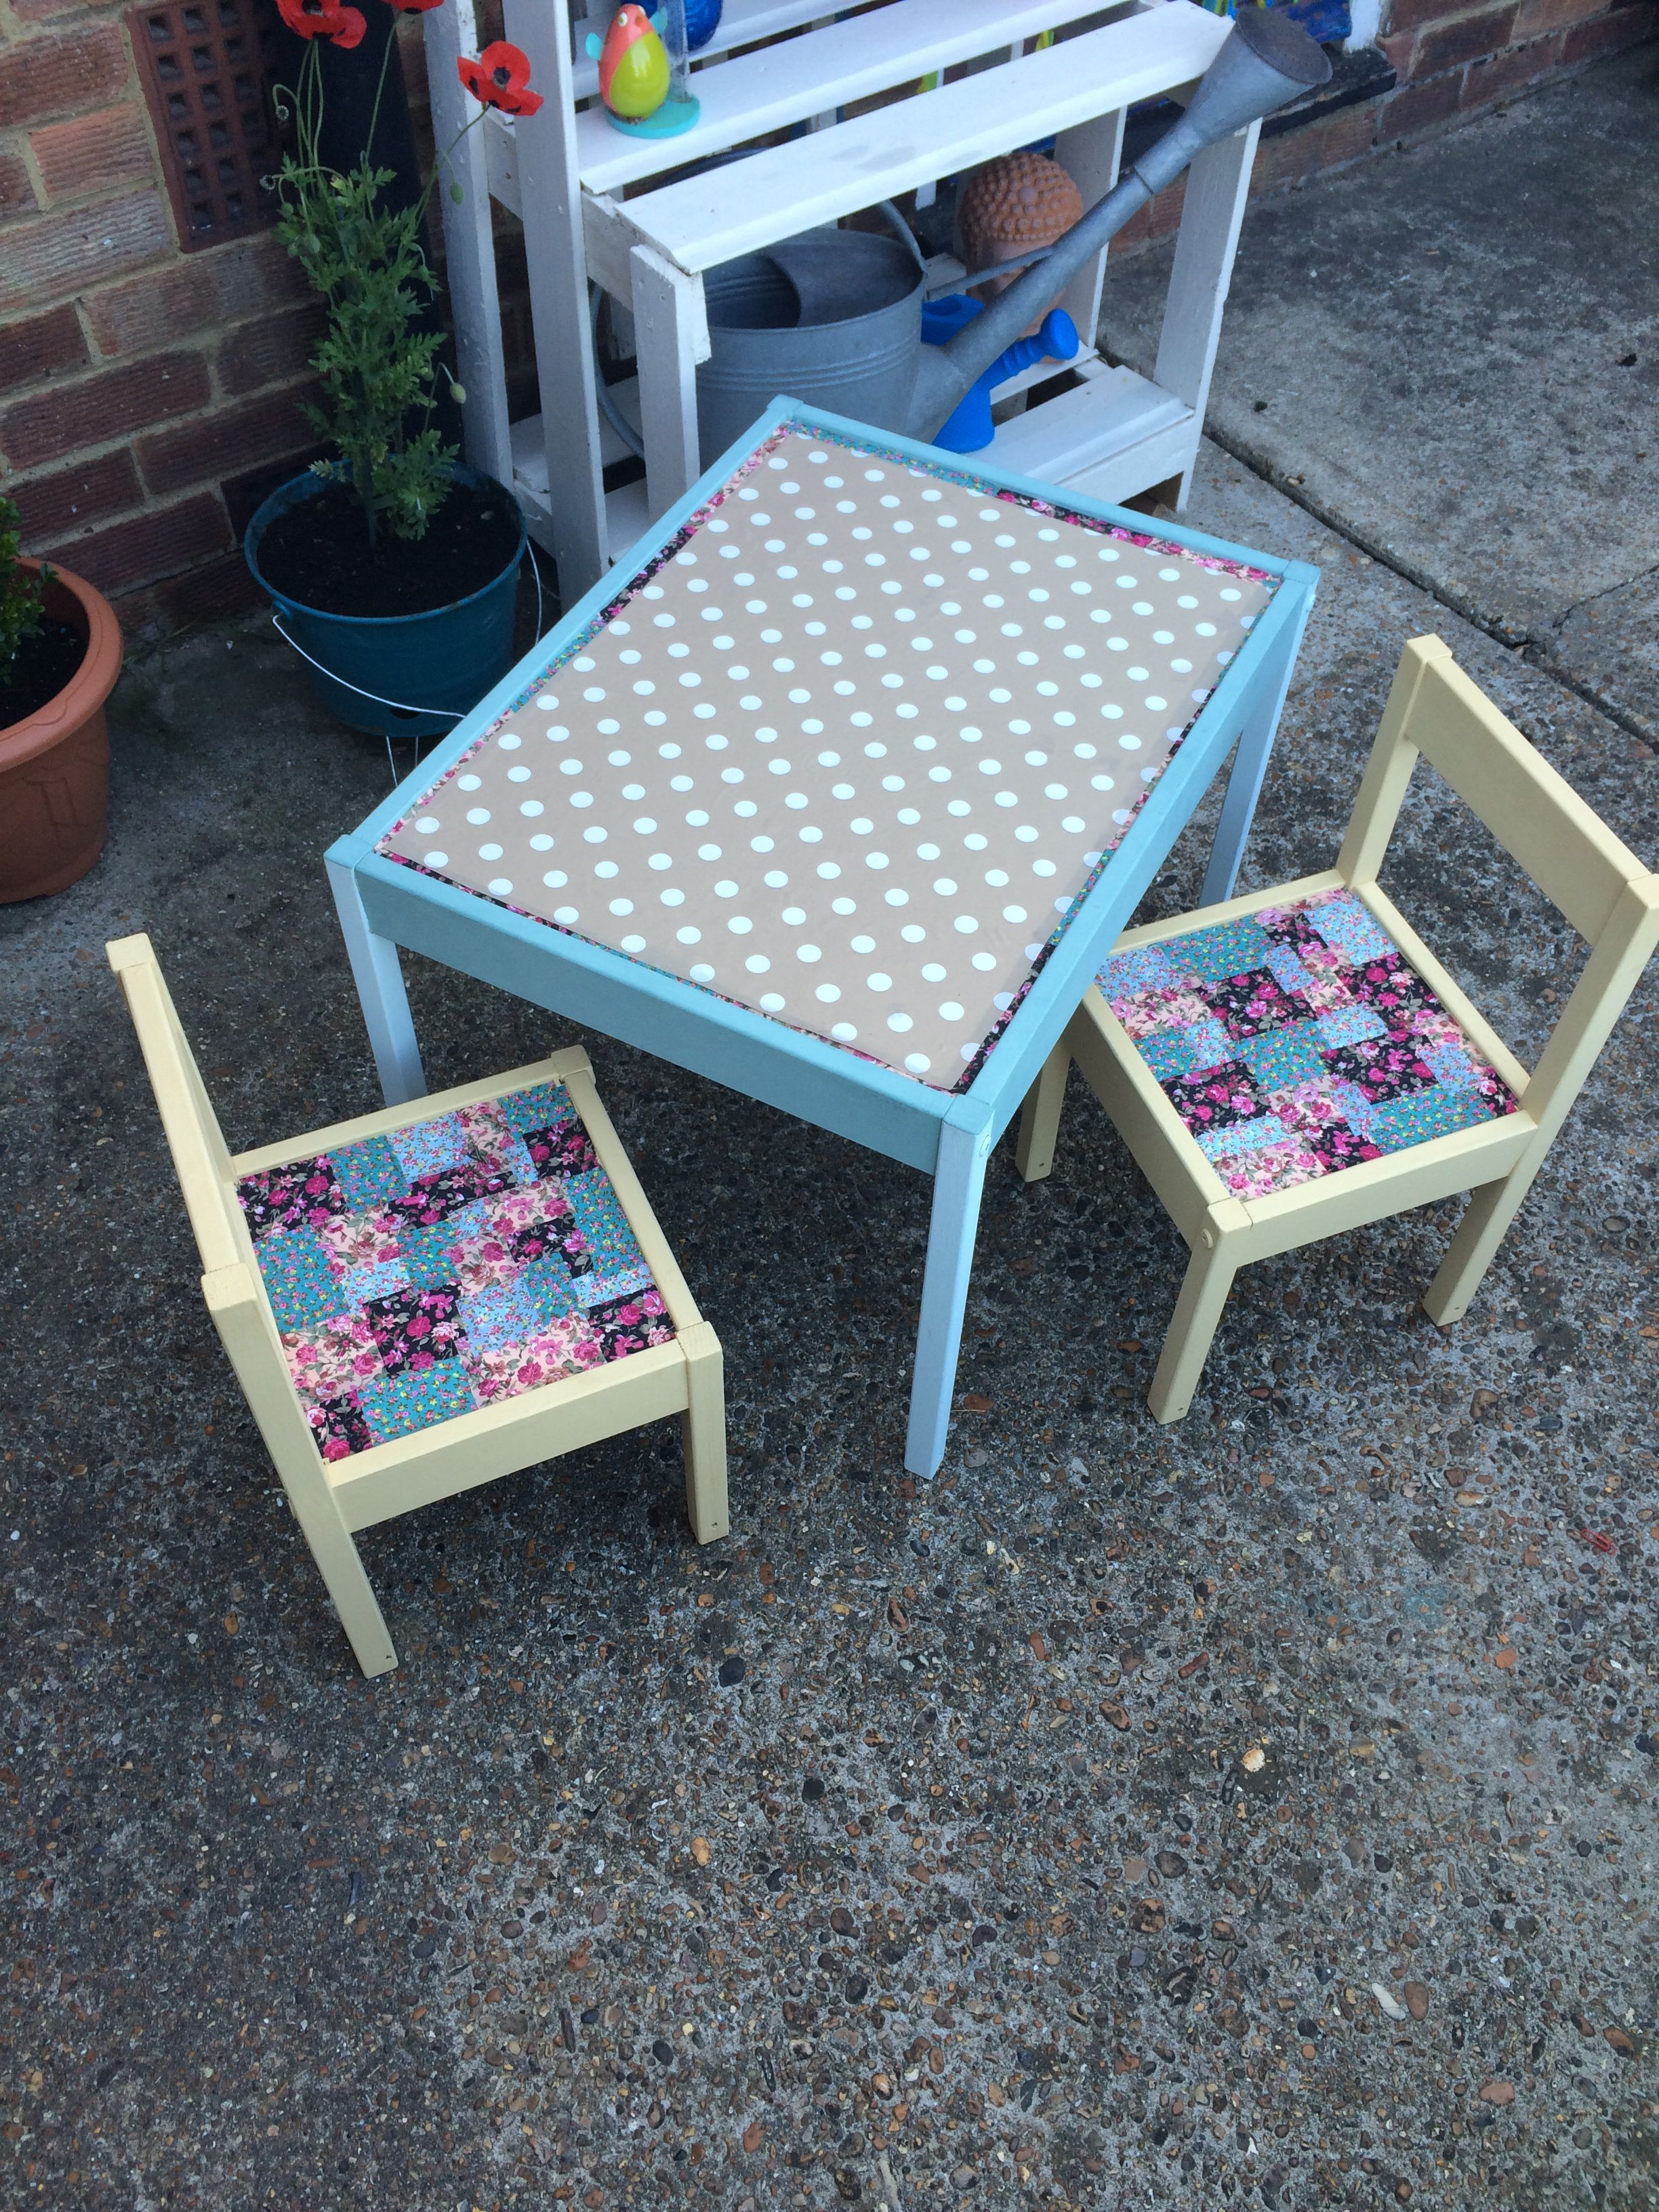 childrens outdoor furniture ikea on ikea latt kids table and chair hack using oil cloth and sticky back fabric all in a sunny af outdoor furniture sets kids table and chairs upcycled furniture ikea latt kids table and chair hack